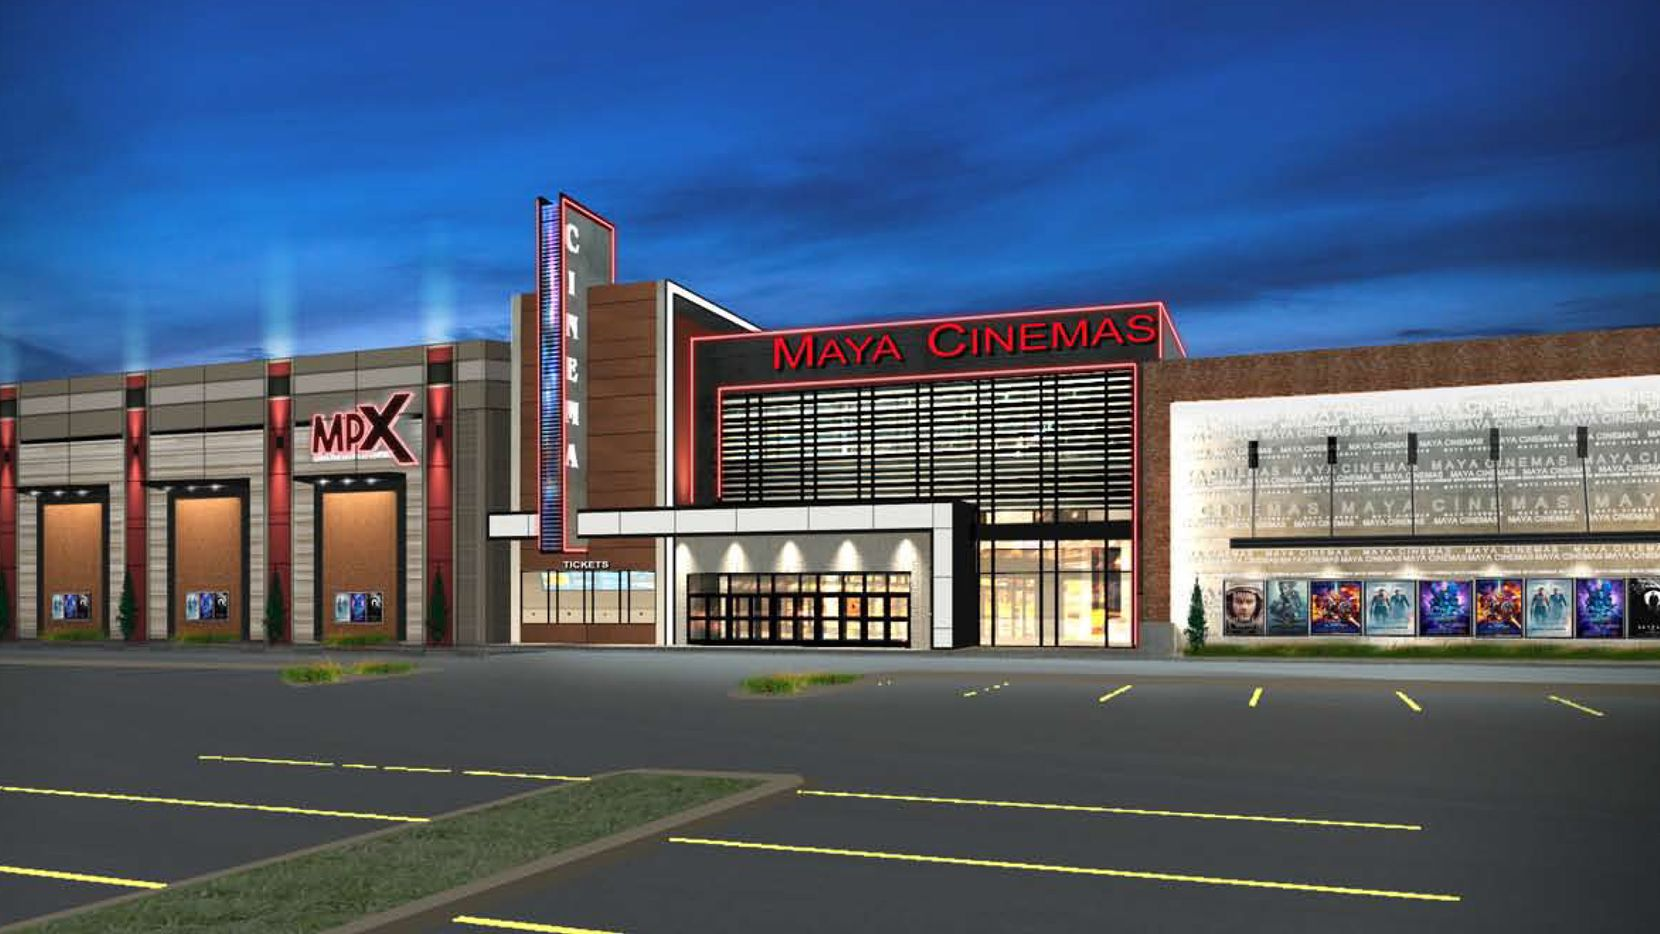 Rendering of proposed new movie theater at Wynnewood Village. Brixmor Property Group has been working with the city of Dallas to begin making improvements to the sprawling shopping center on 65 acres just west of I-35 along S. Zang Blvd. and Illinois Ave.